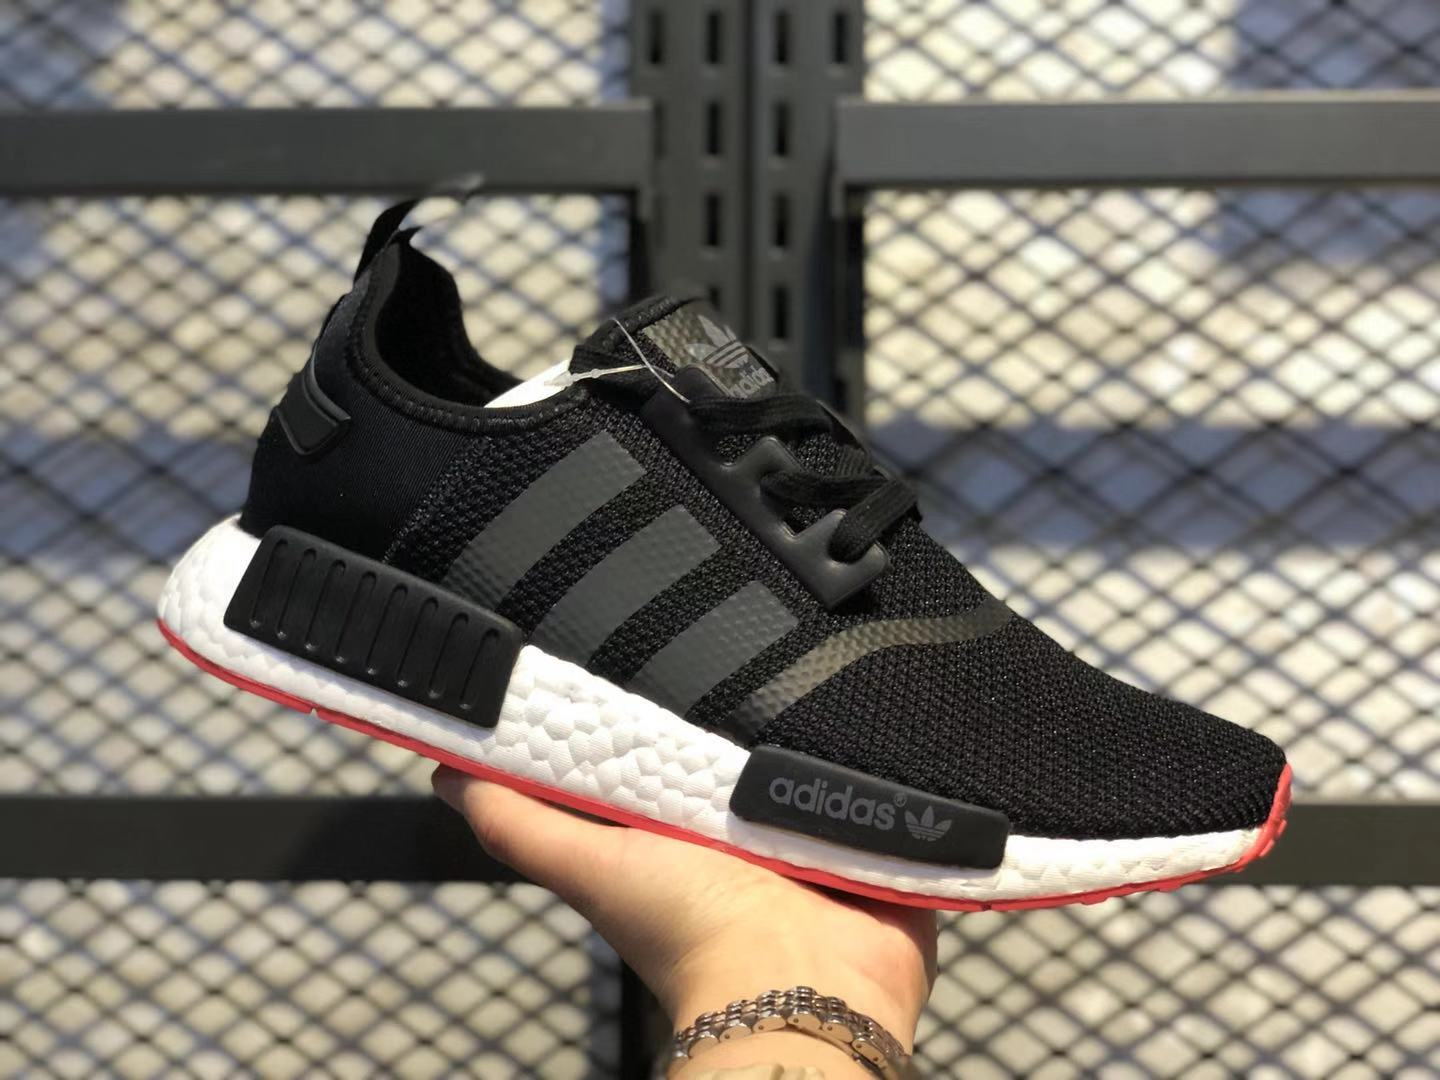 Adidas NMD R1 Black/White-Red 2019 Newest Running Shoes Online Buy CQ2040